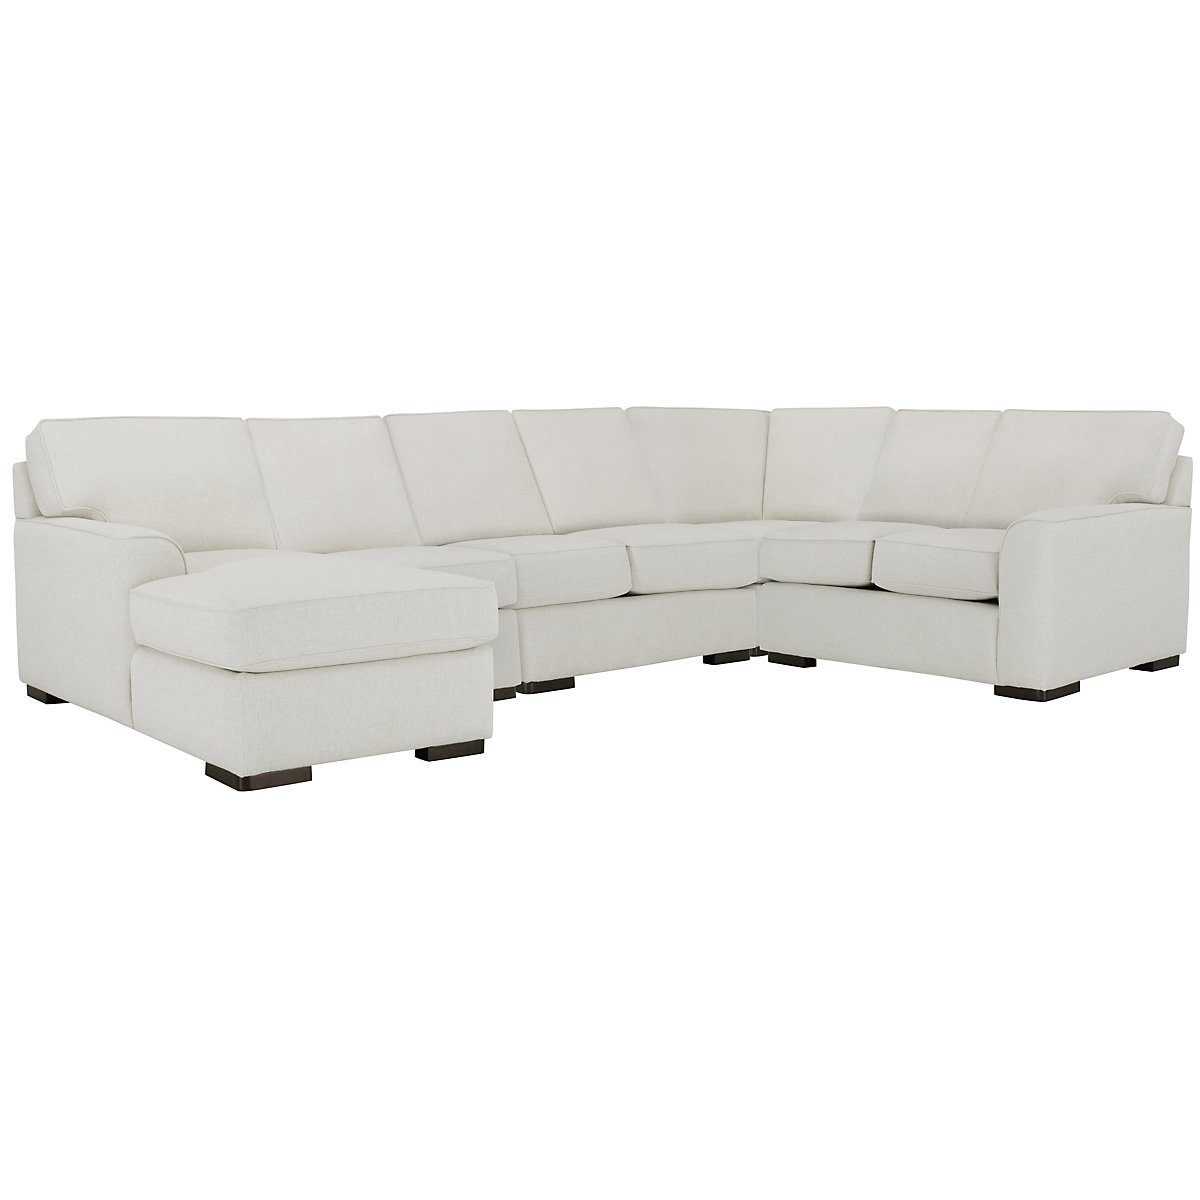 Austin White Fabric Large Left Chaise Sectional